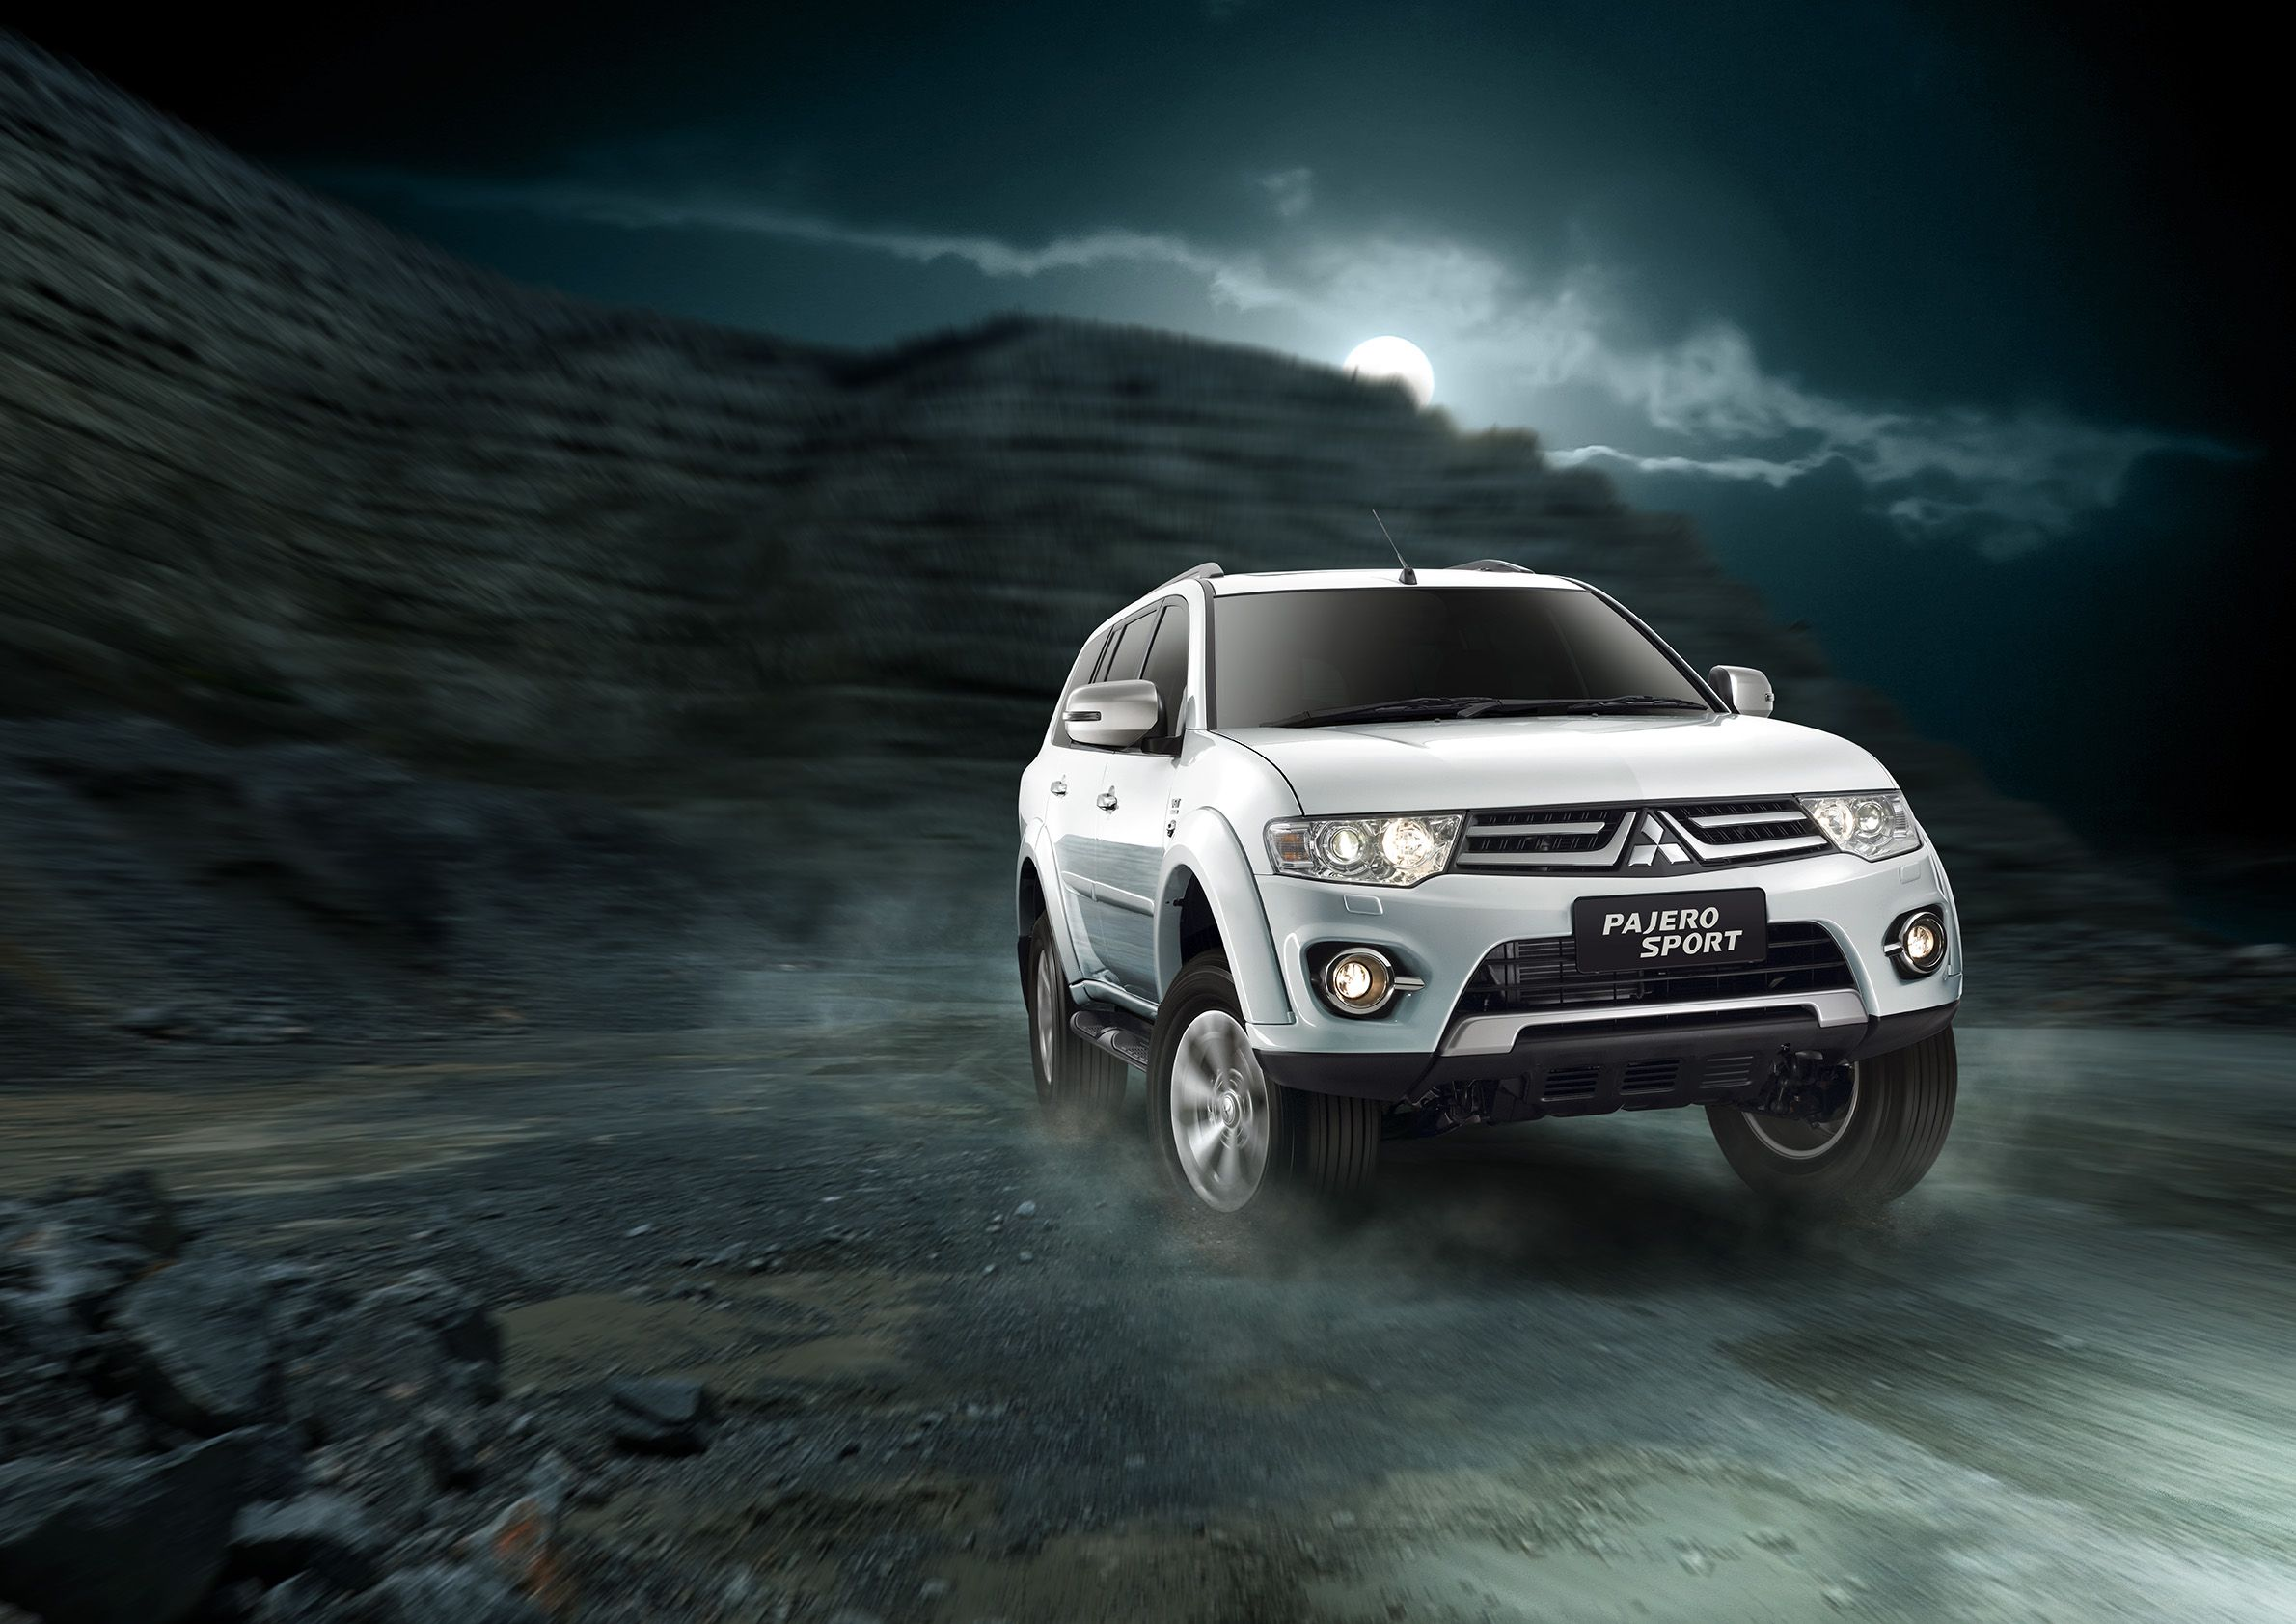 Exceptional Mitsubishi Pajero Sport Wallpaper Background